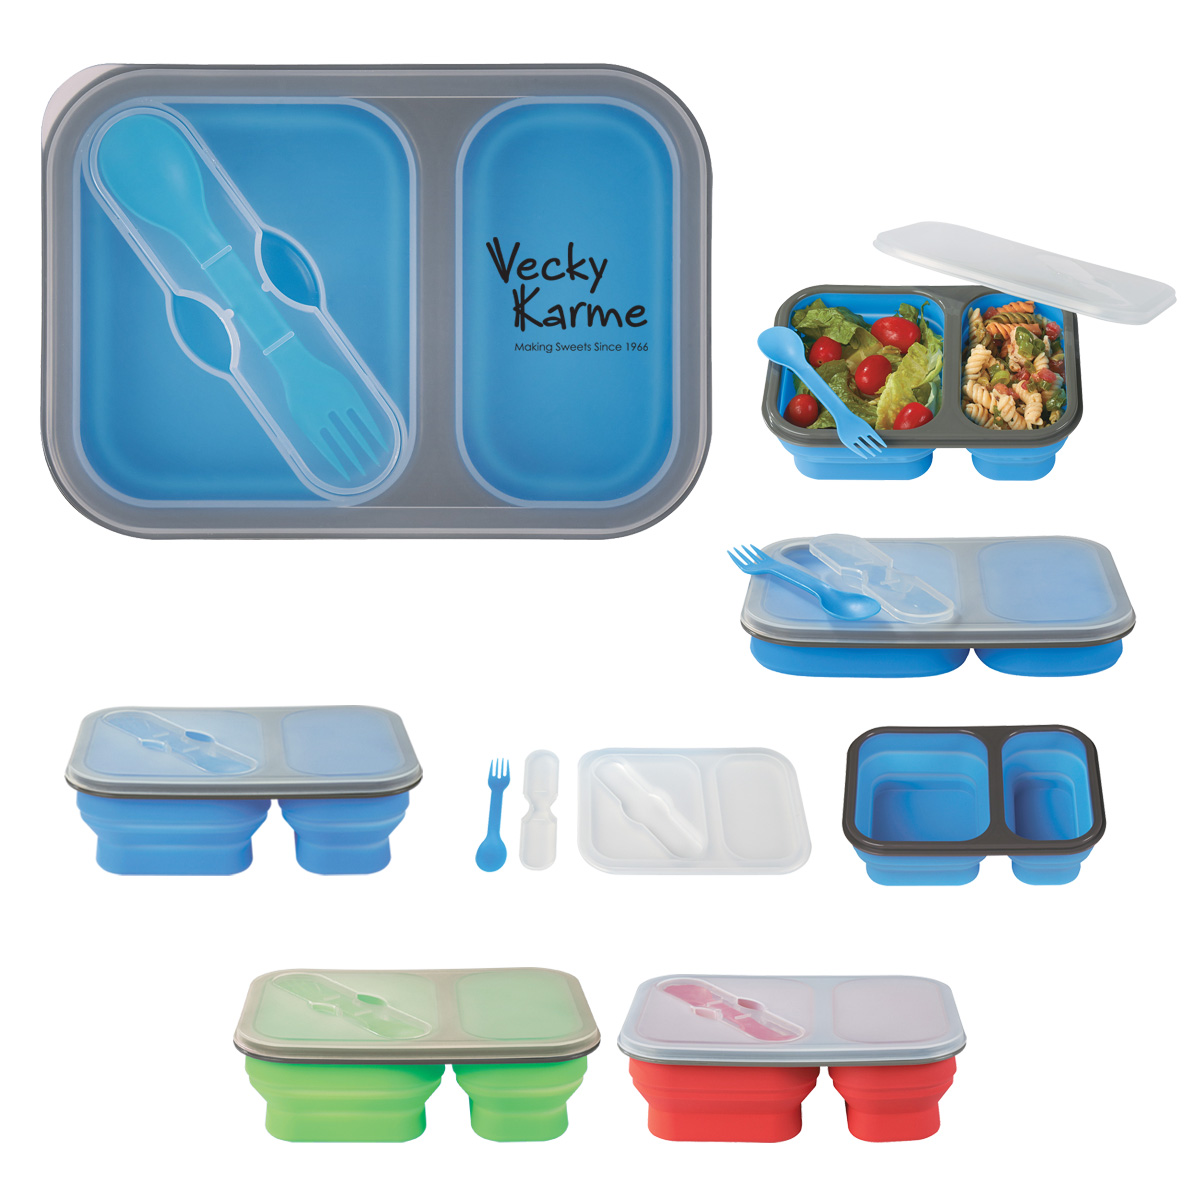 574254457-816 - Collapsible 2-Section Food Container With Dual Utensil - thumbnail